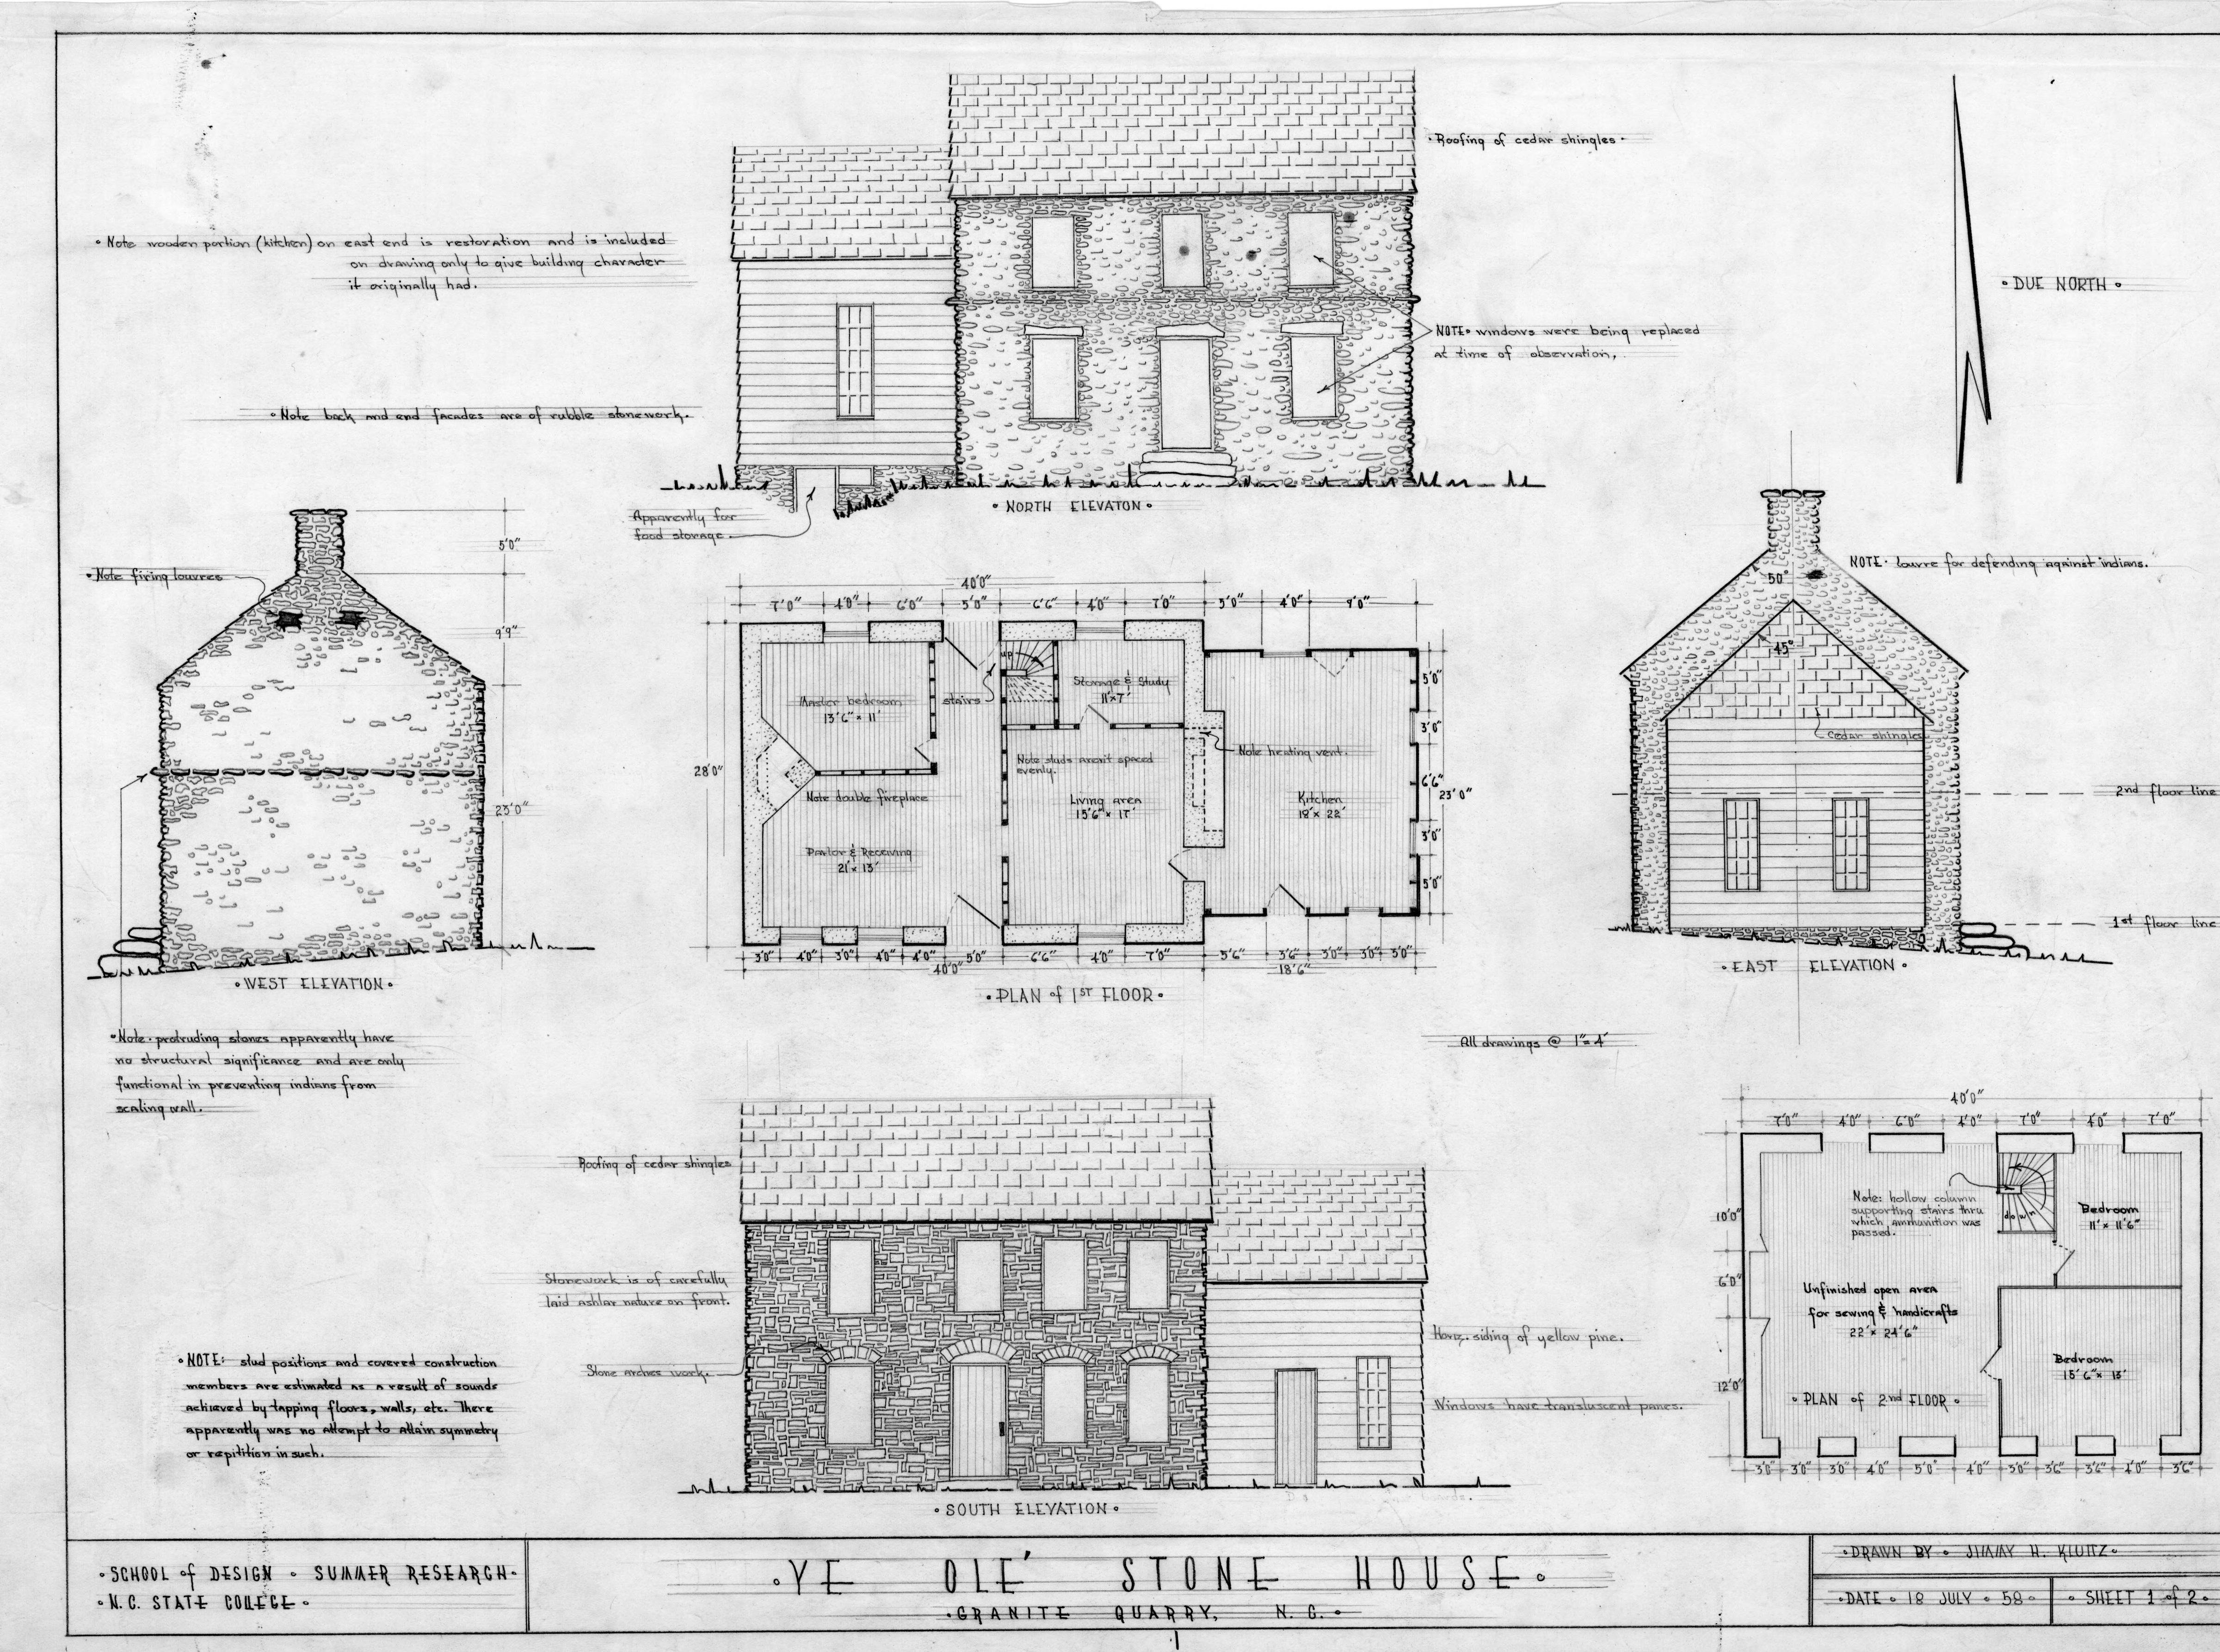 Elevations And Floor Plans Michael Braun House Rowan